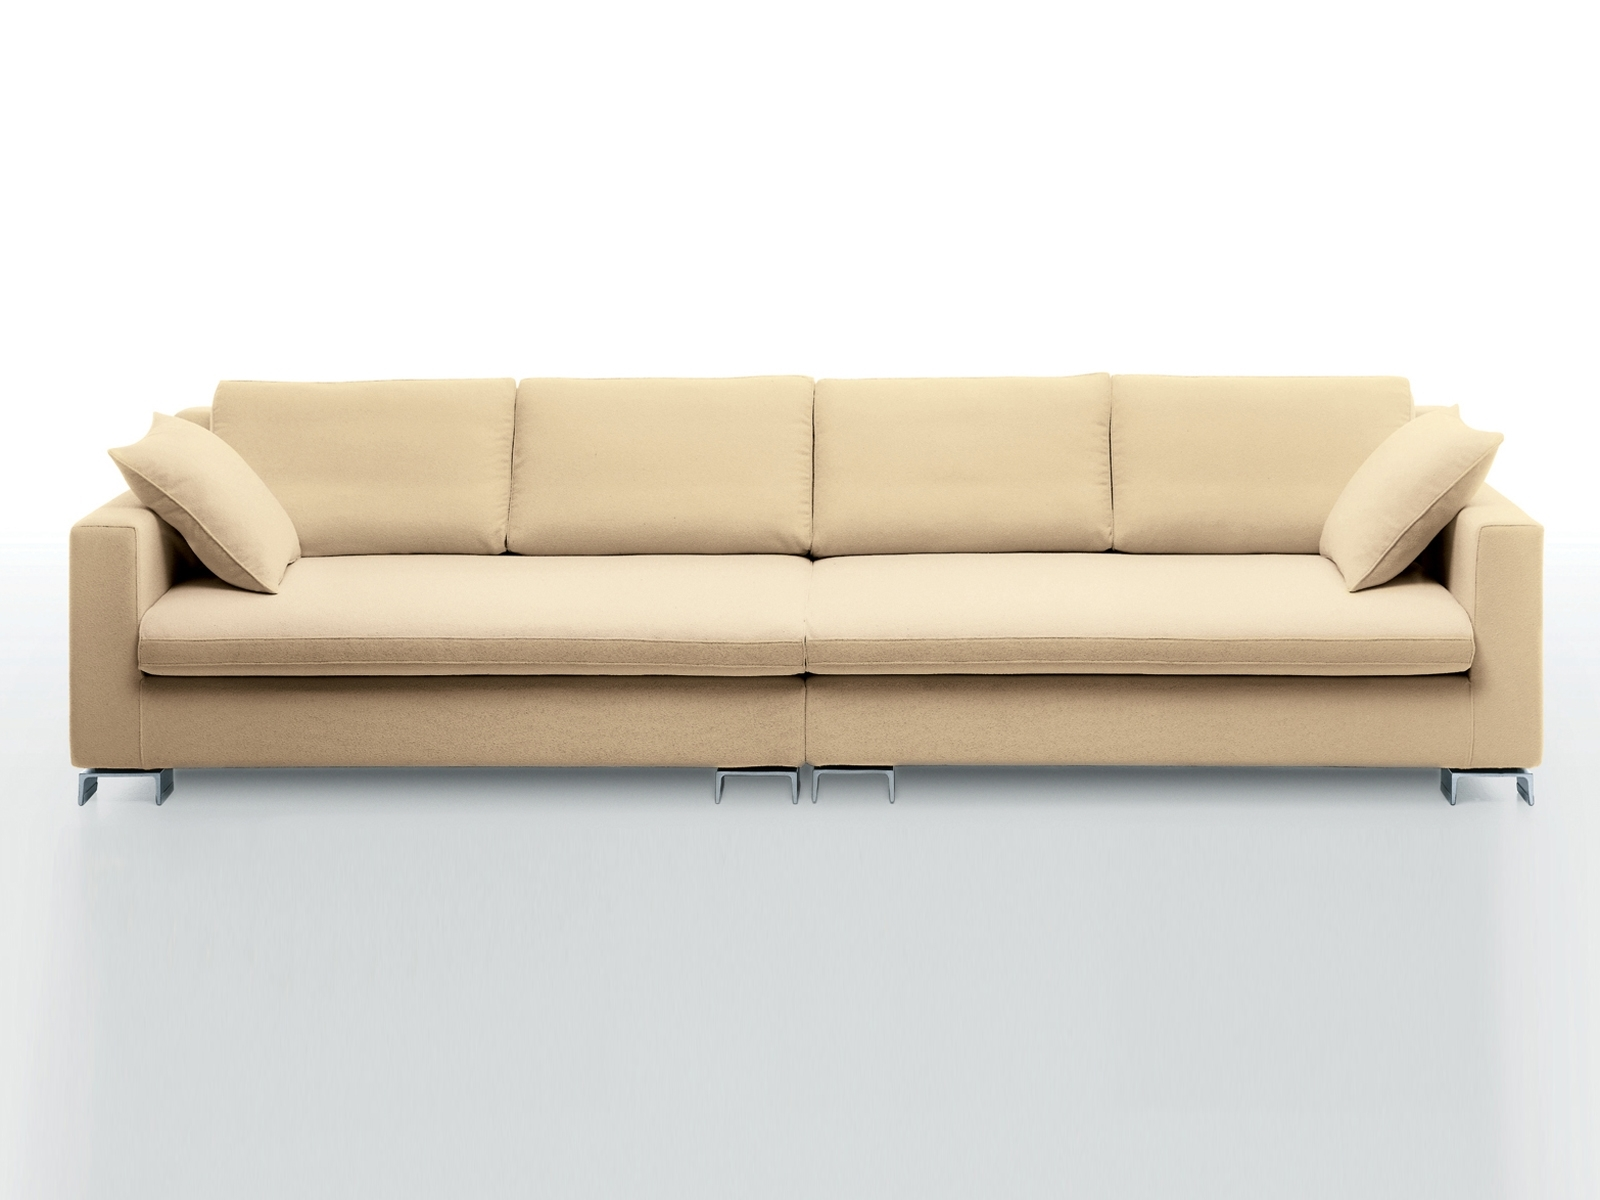 4 Seater Sofa For Large And Trendy Living Room Regarding Widely Used Four Seater Sofas (View 3 of 20)